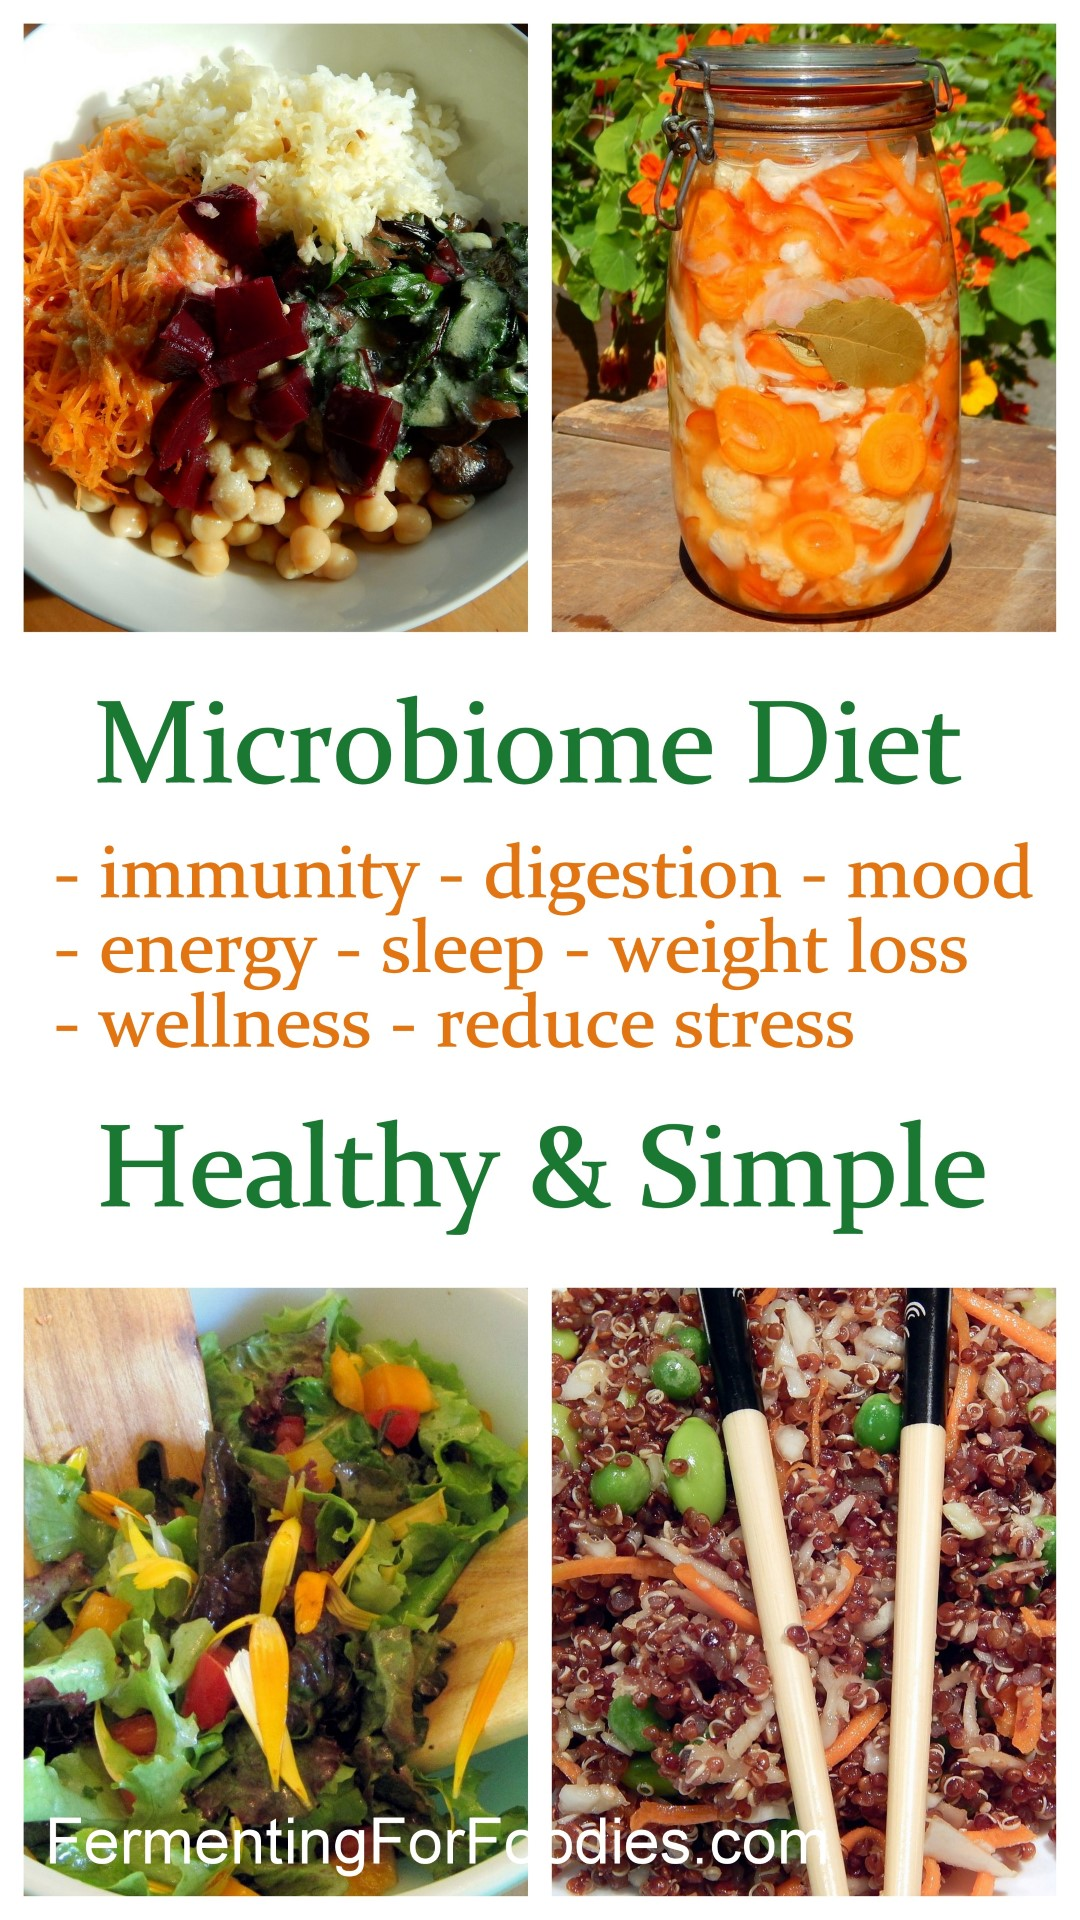 Microbiome diet for immunity, digestion, mood, energy, sleep, weight loss, wellness, stress